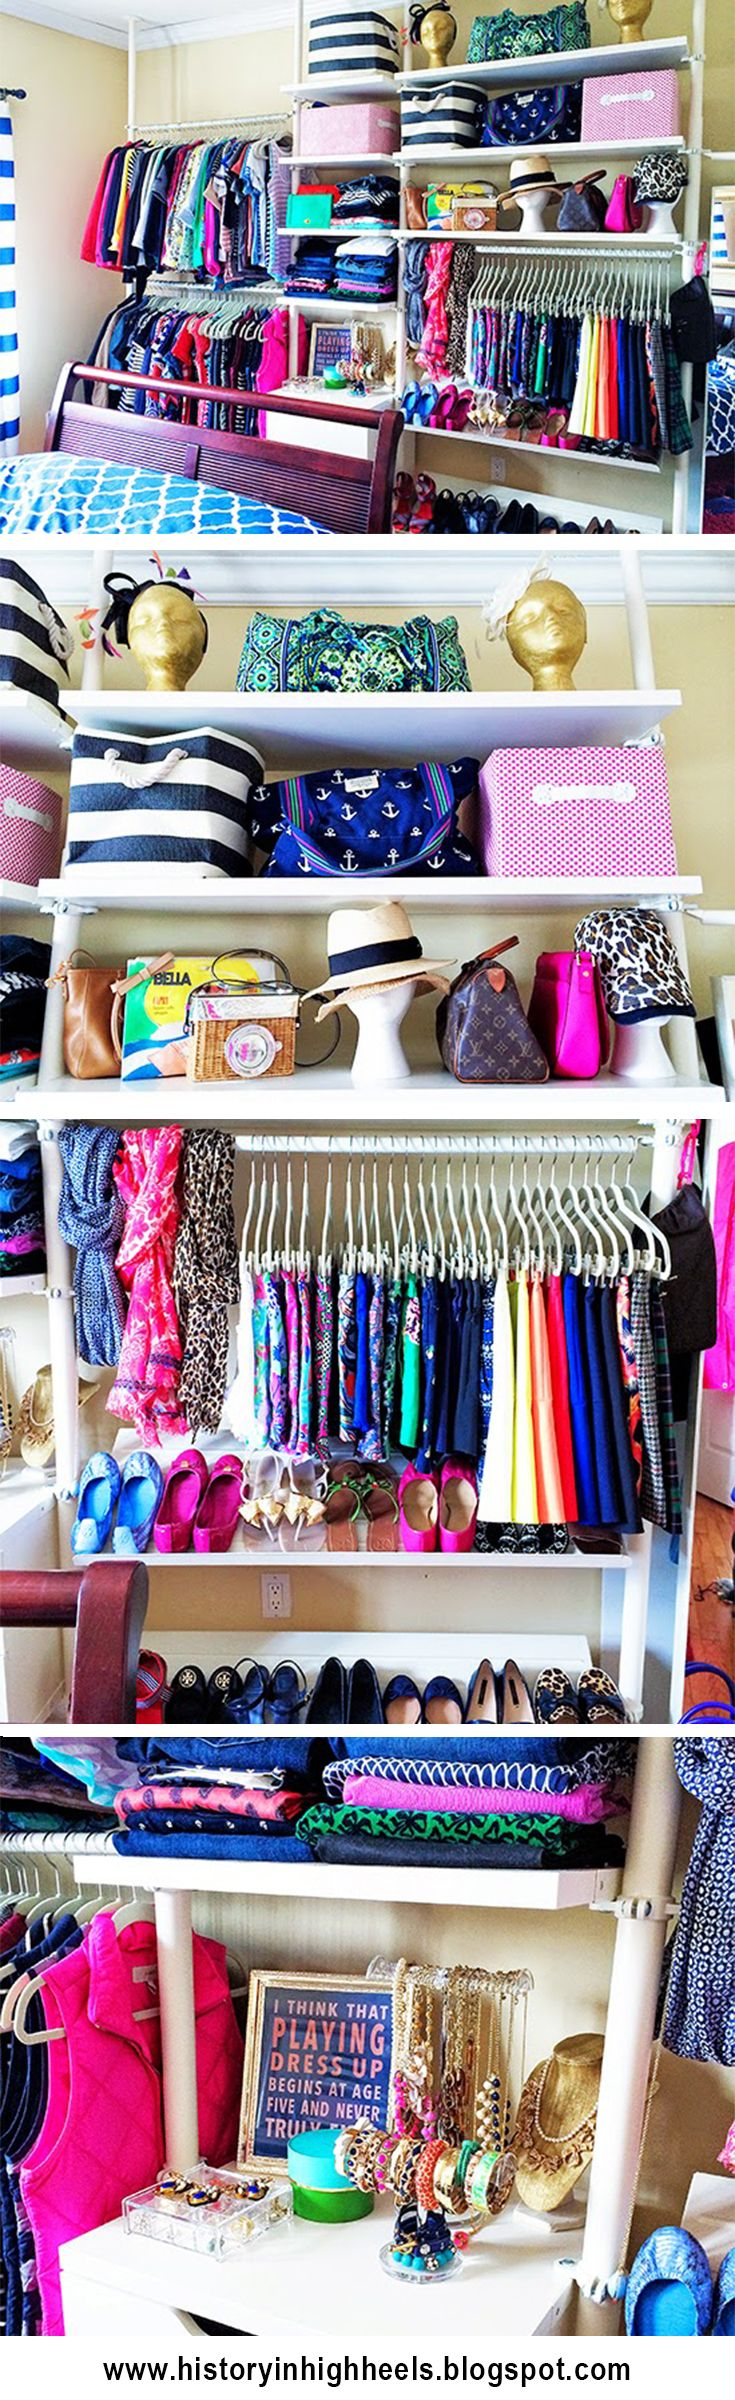 No Closet Space No Problem Turn Any Wall Into A Giant Boutique Closet With The Ikea Stoleman